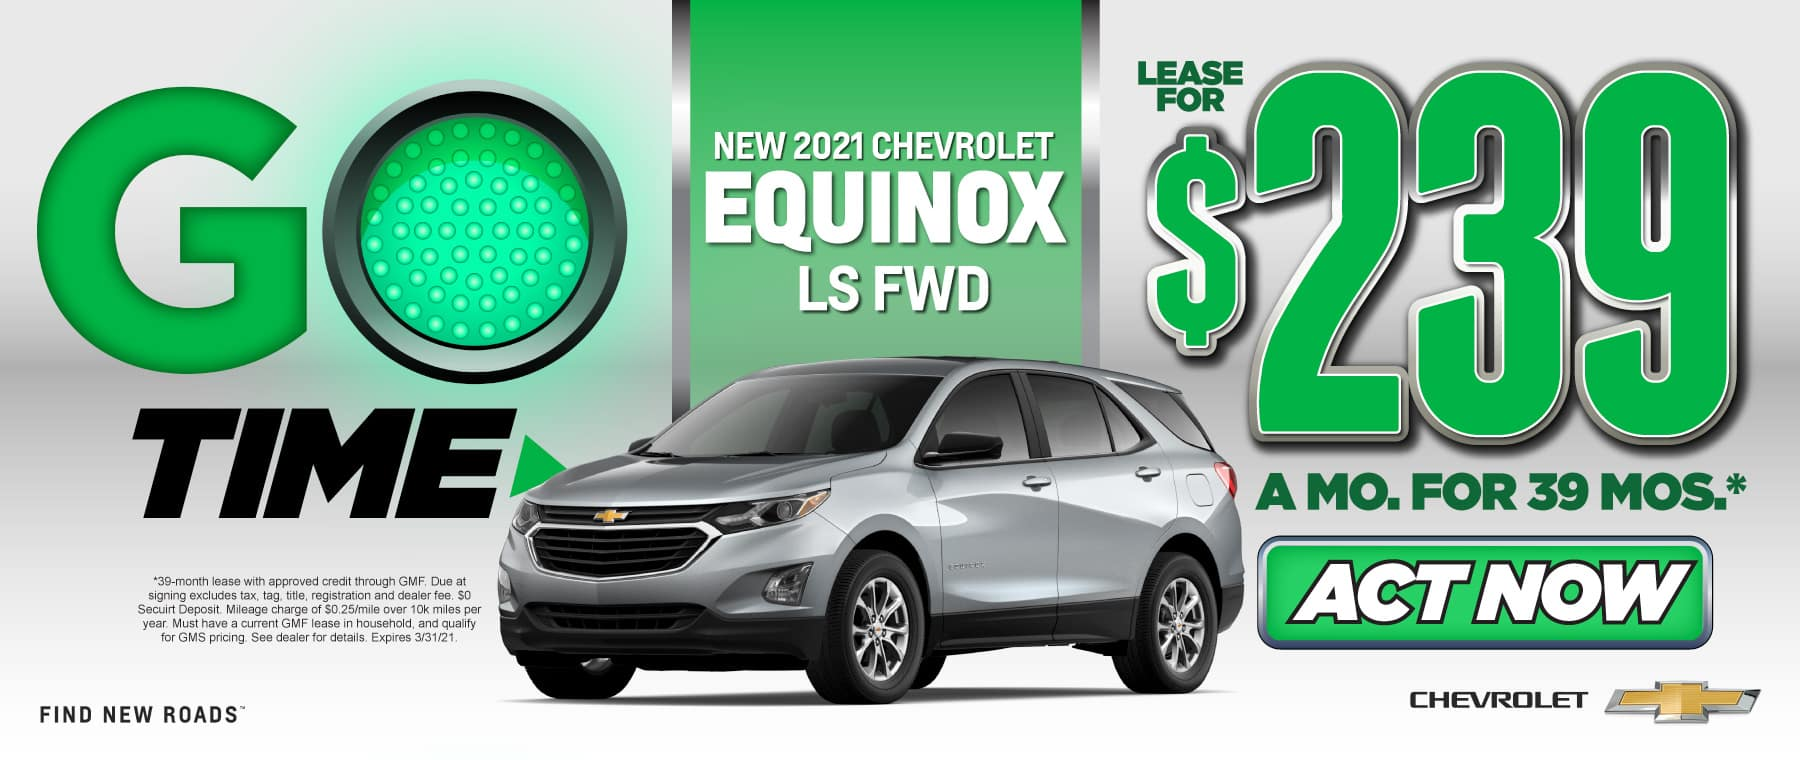 New 2021 Chevy Equinox - Only $239 a month - Act Now